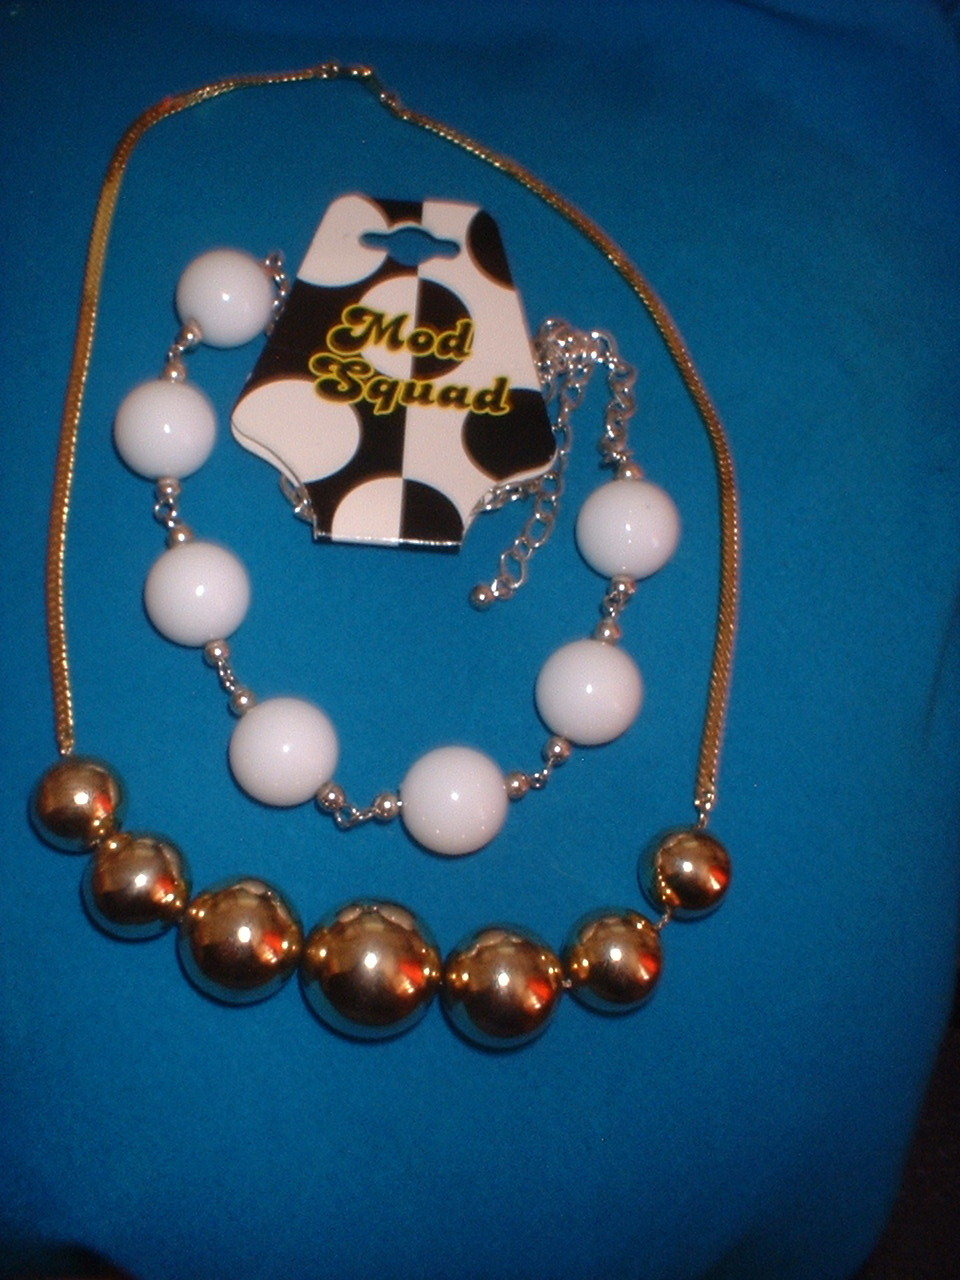 Mod squad bead necklace gold tone beads lot